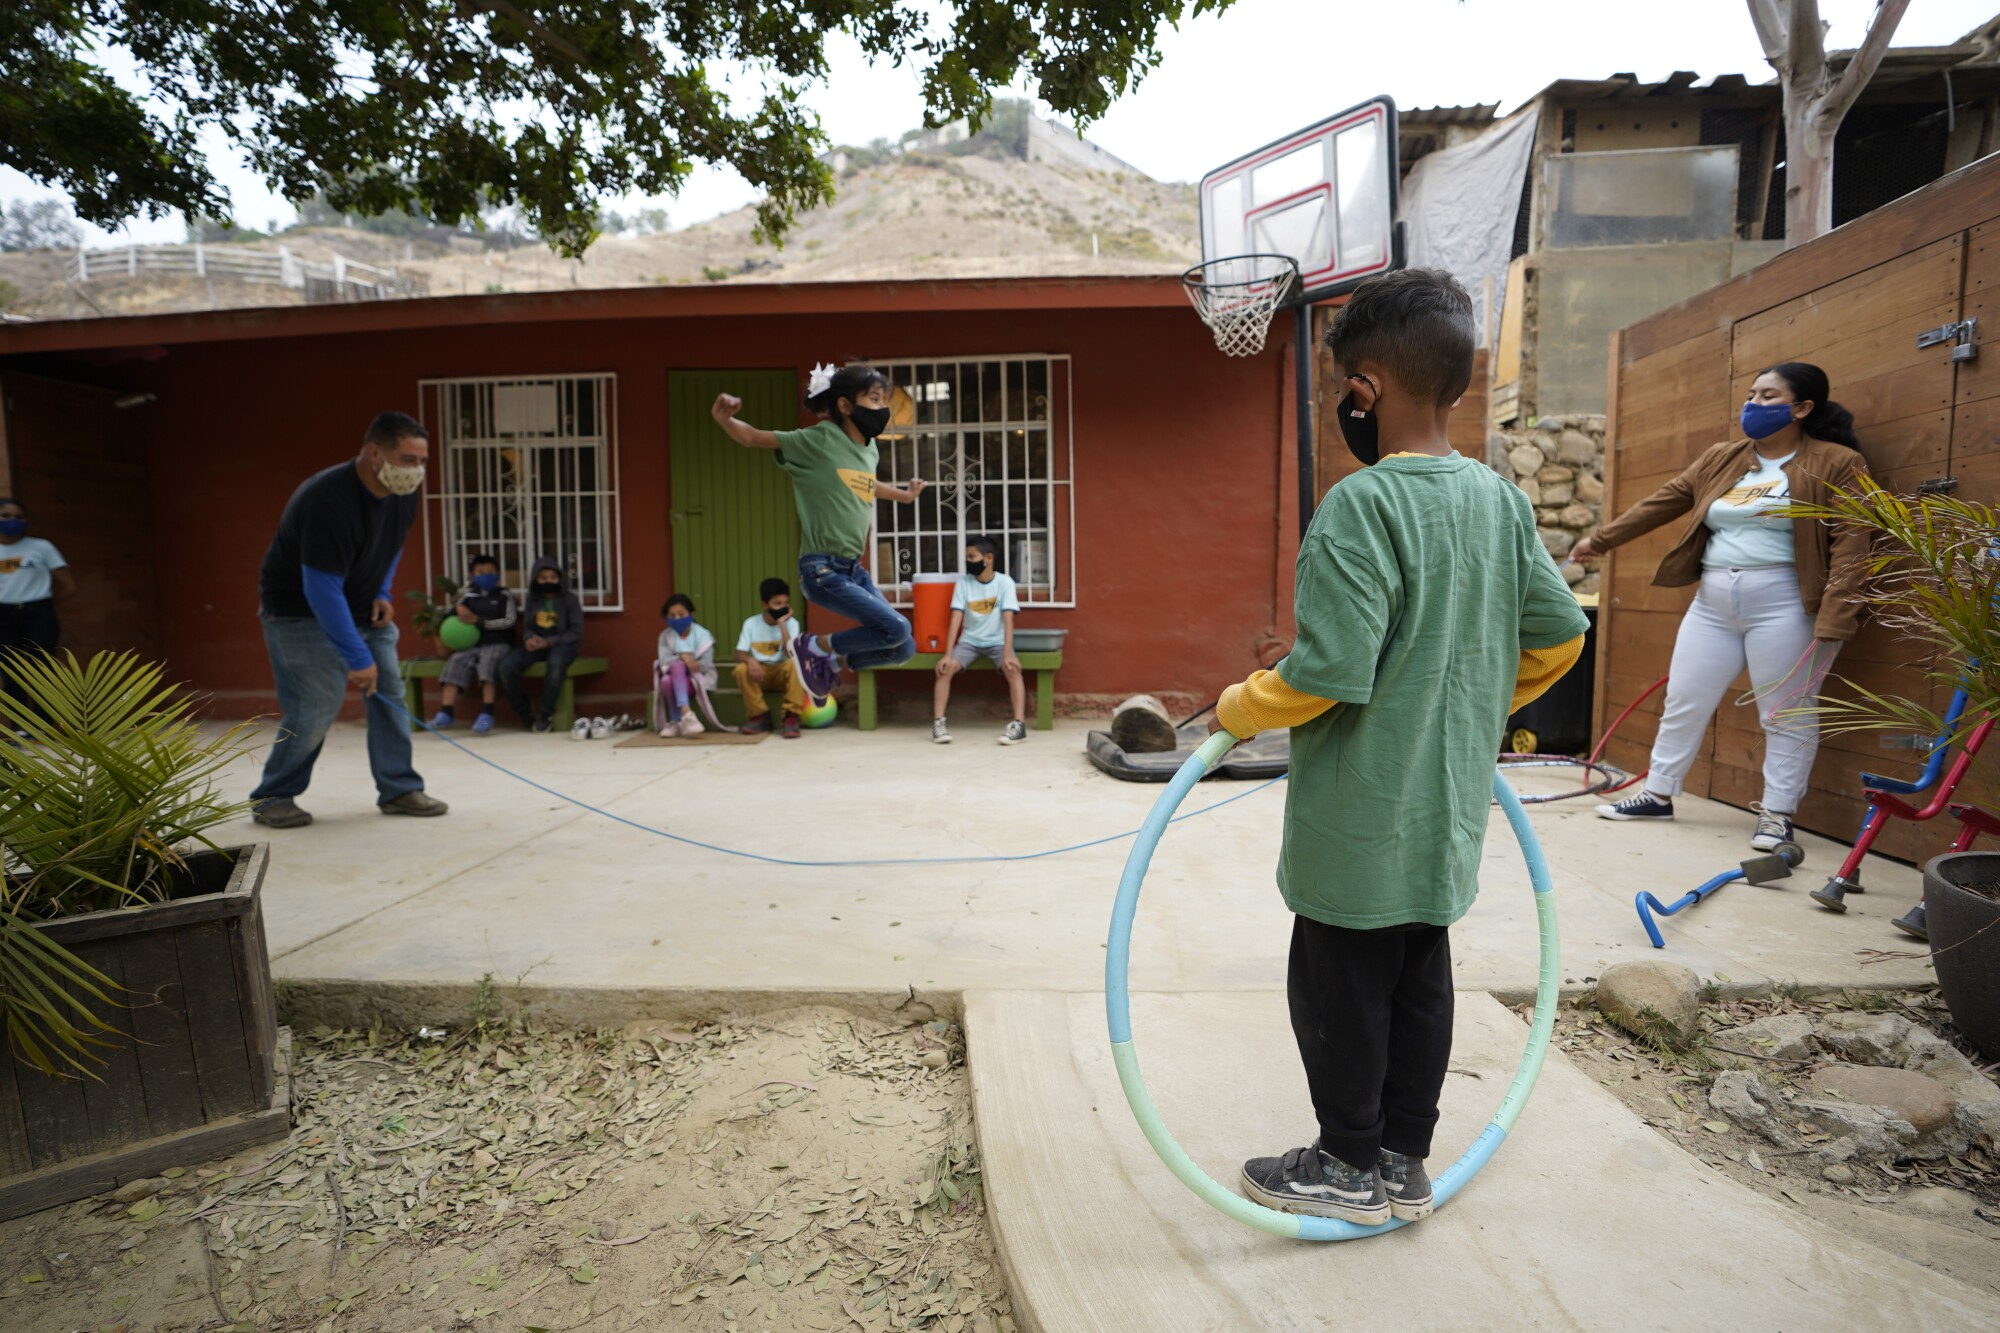 A girl jumps over a rope while a boy holding a hula hoop watches